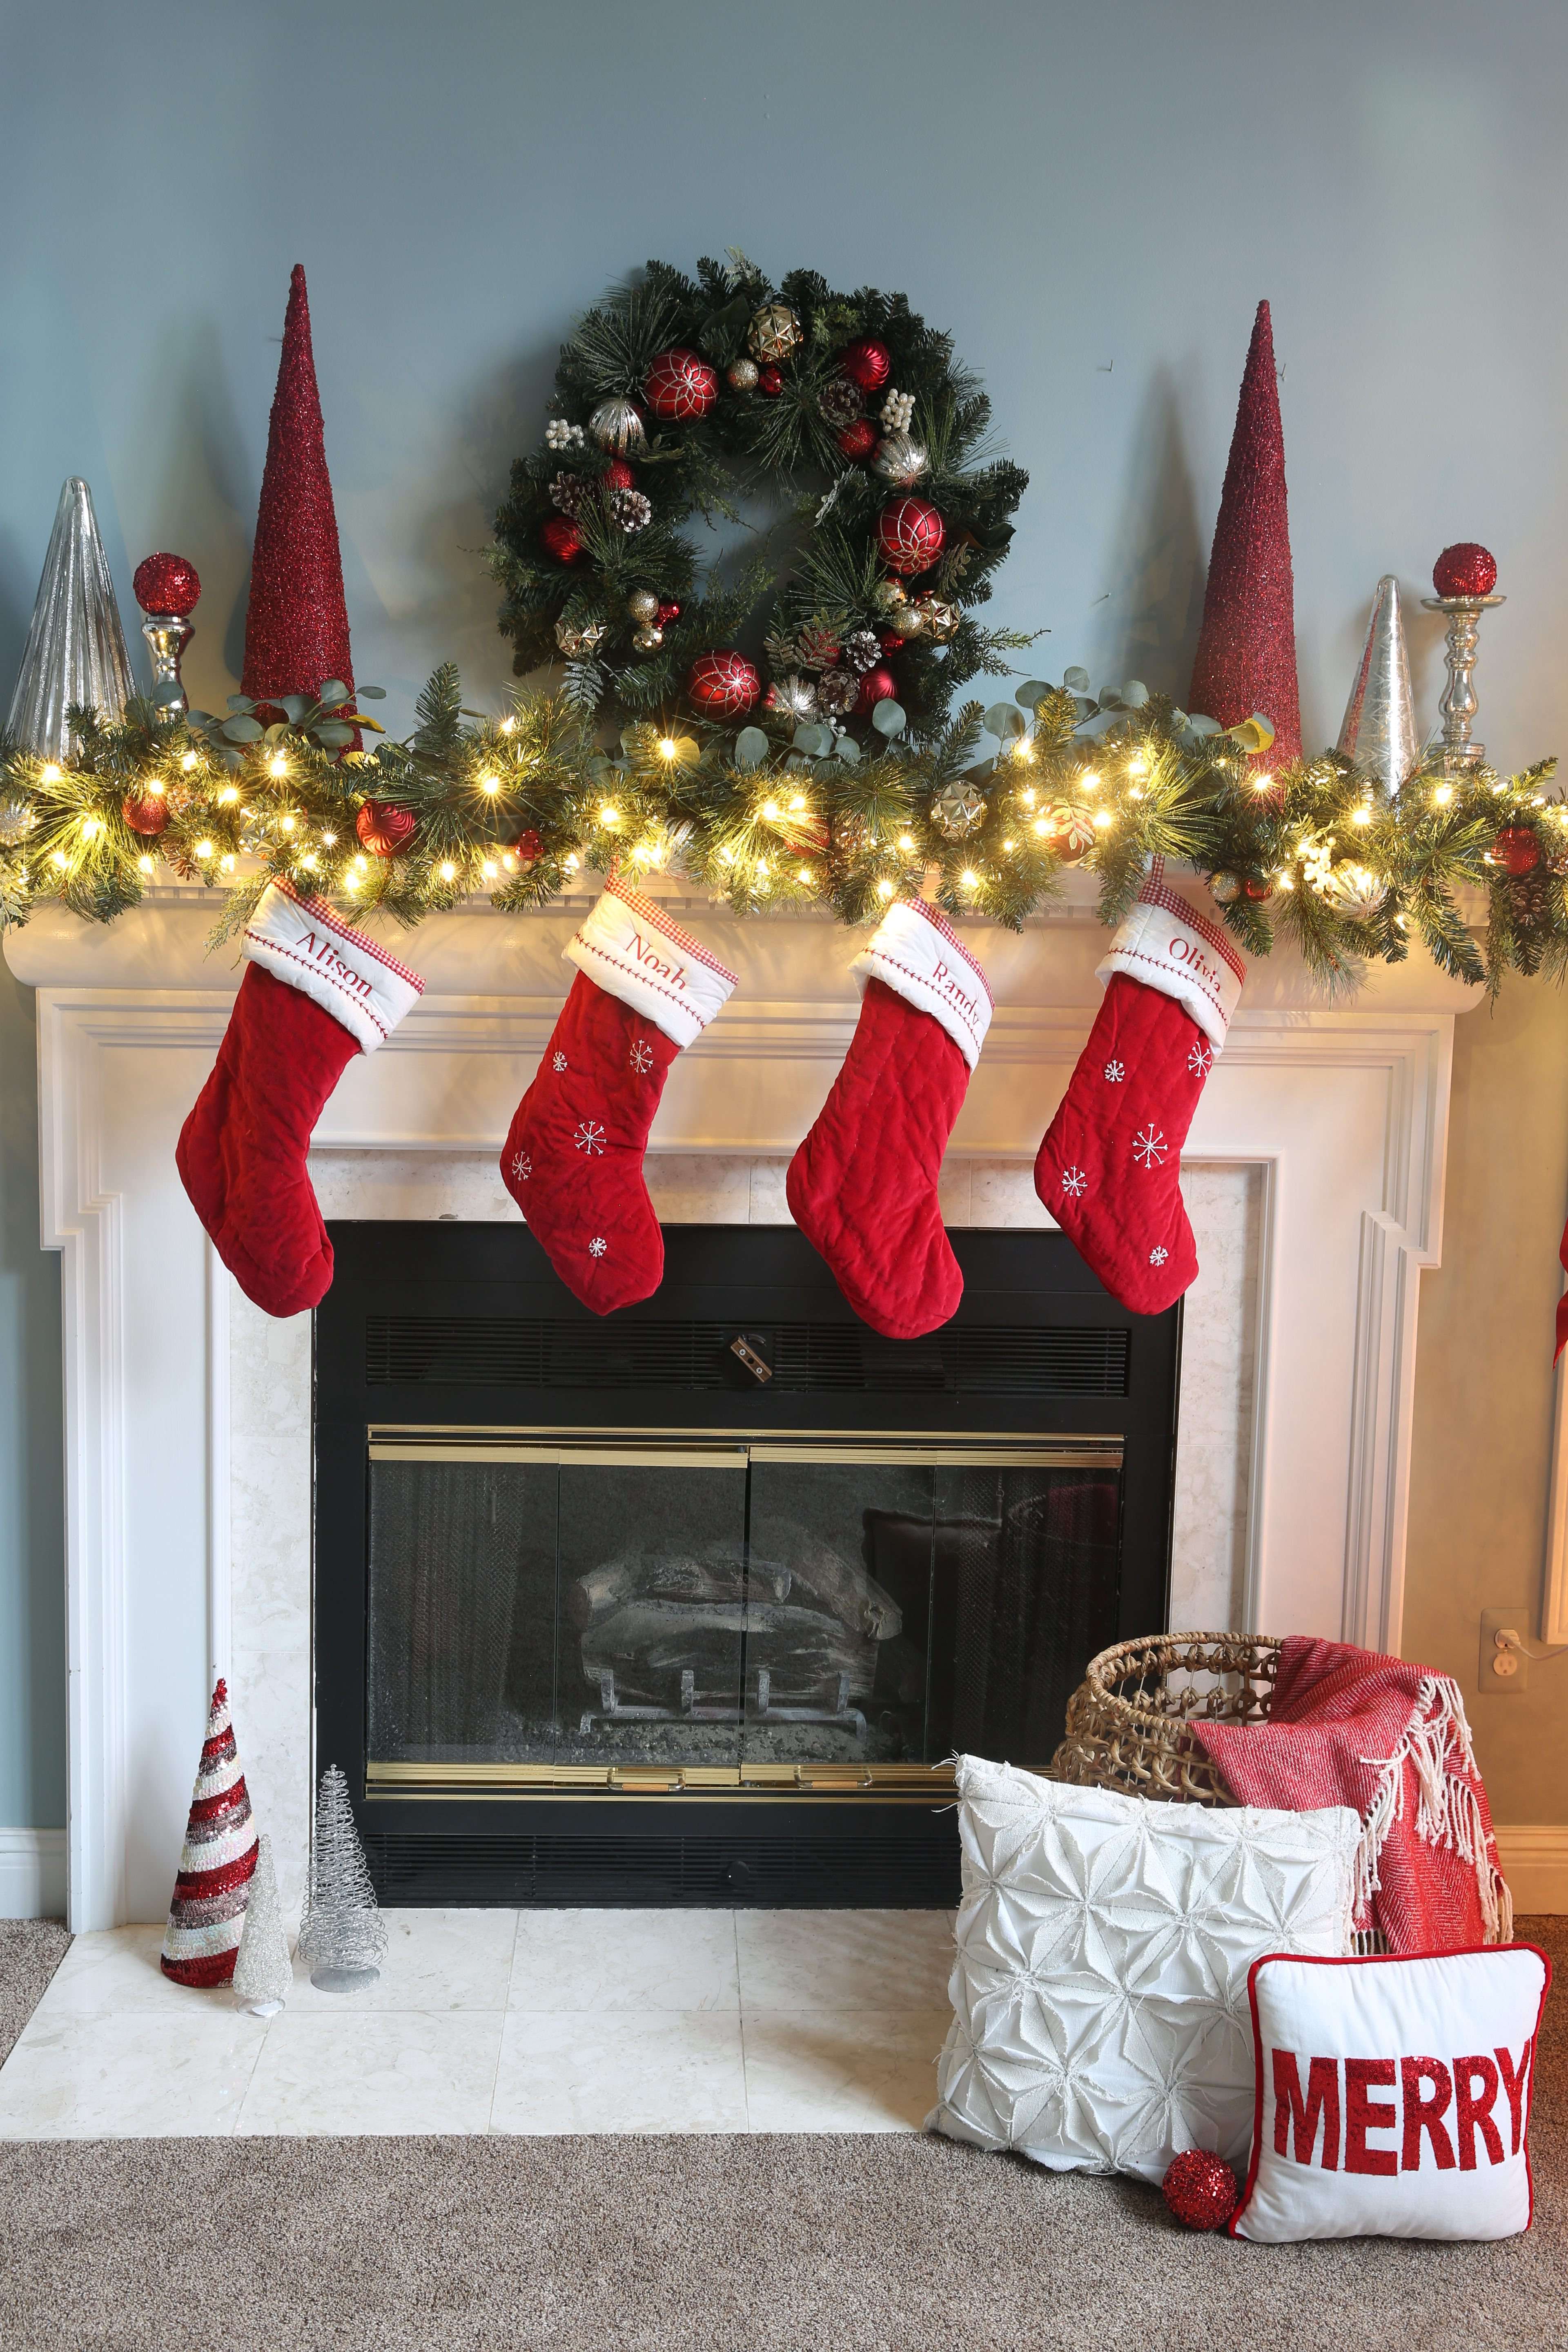 Traditional red and green Christmas decor for family rooms, Christmas trees, front porches, mantles and holiday tables. #colorscheme #christmasdecor #christmas